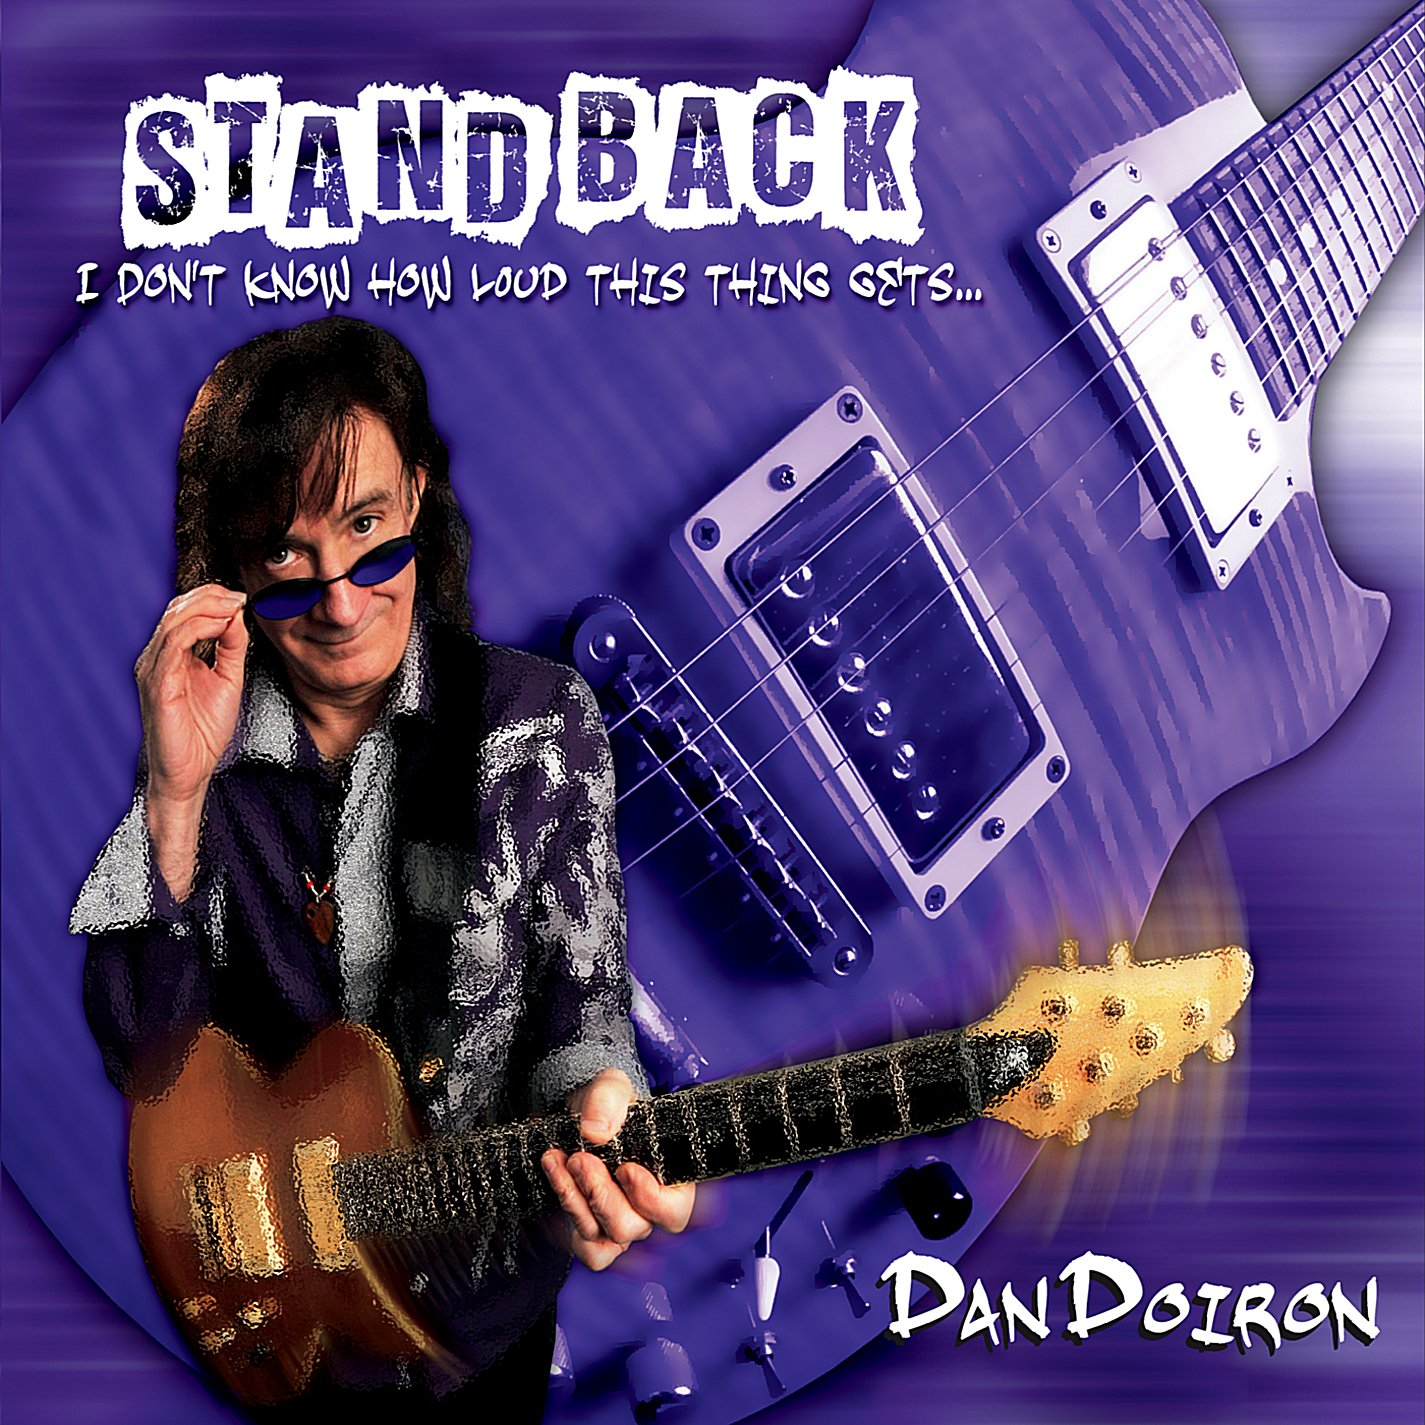 DAN DOIRON Stand Back: I Don't Know Loud This Thing Goes